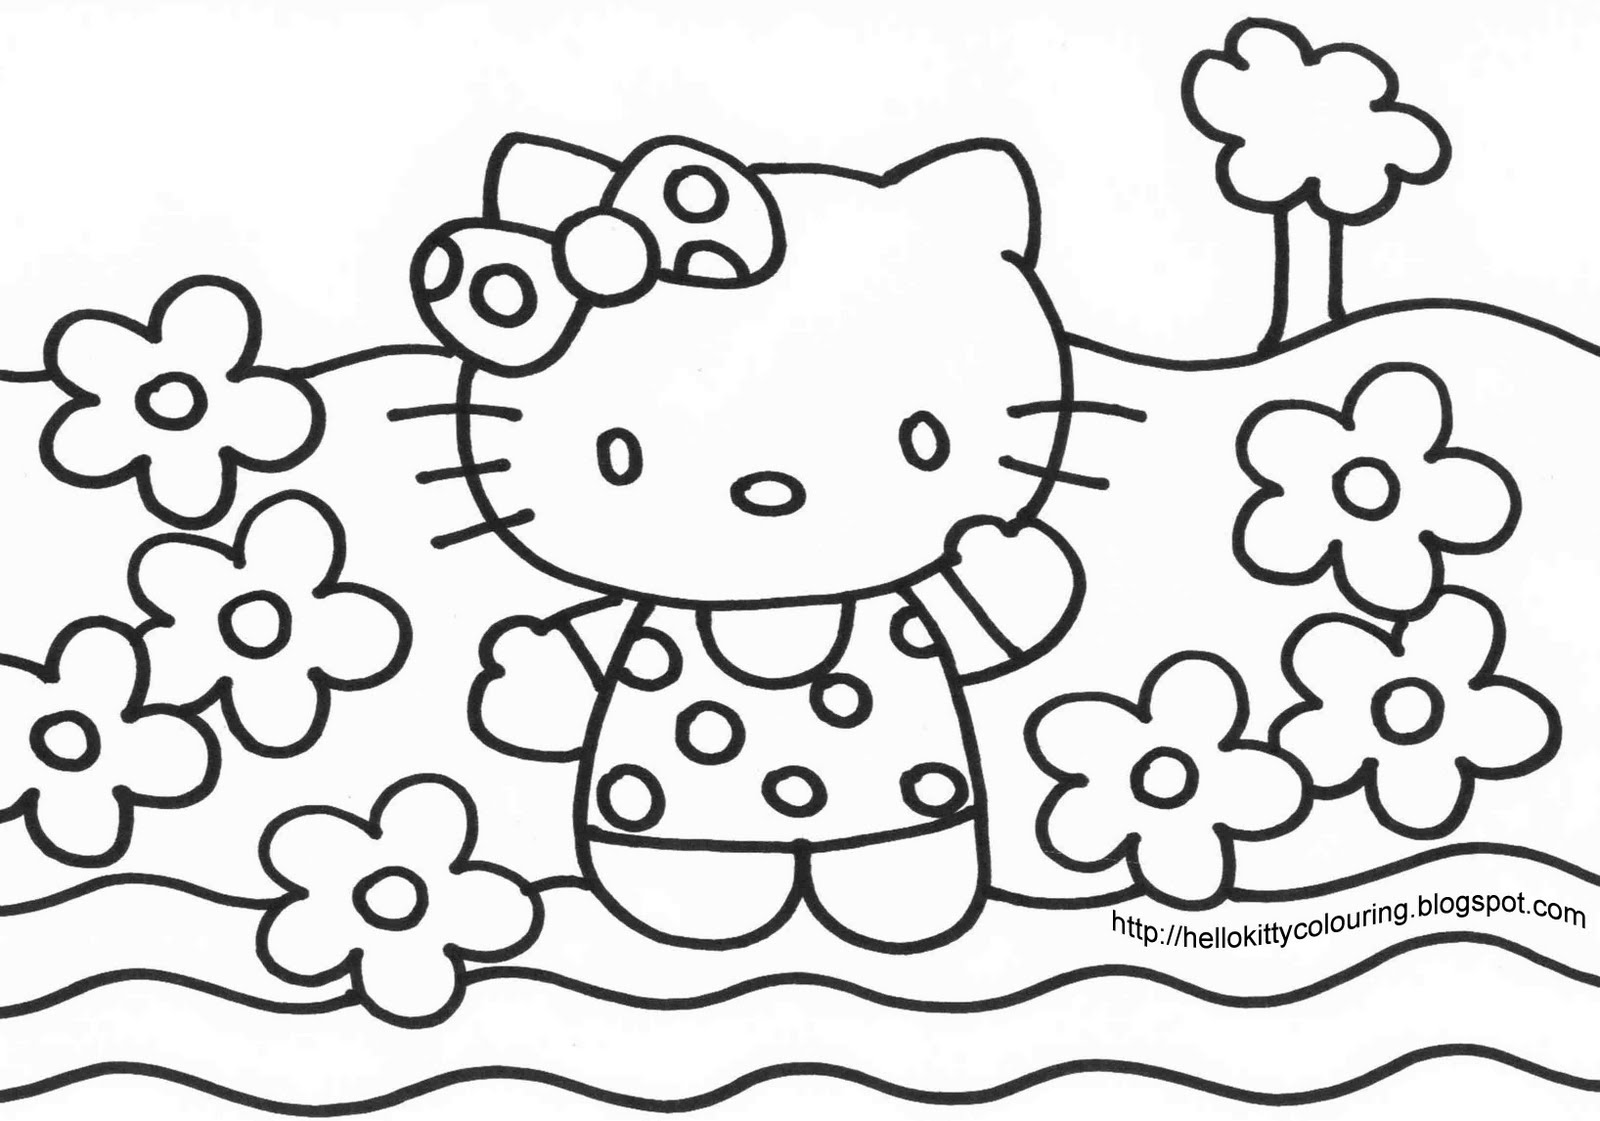 Coloring Pages Hello Kitty Dolphin : Hello kitty coloring pages forever